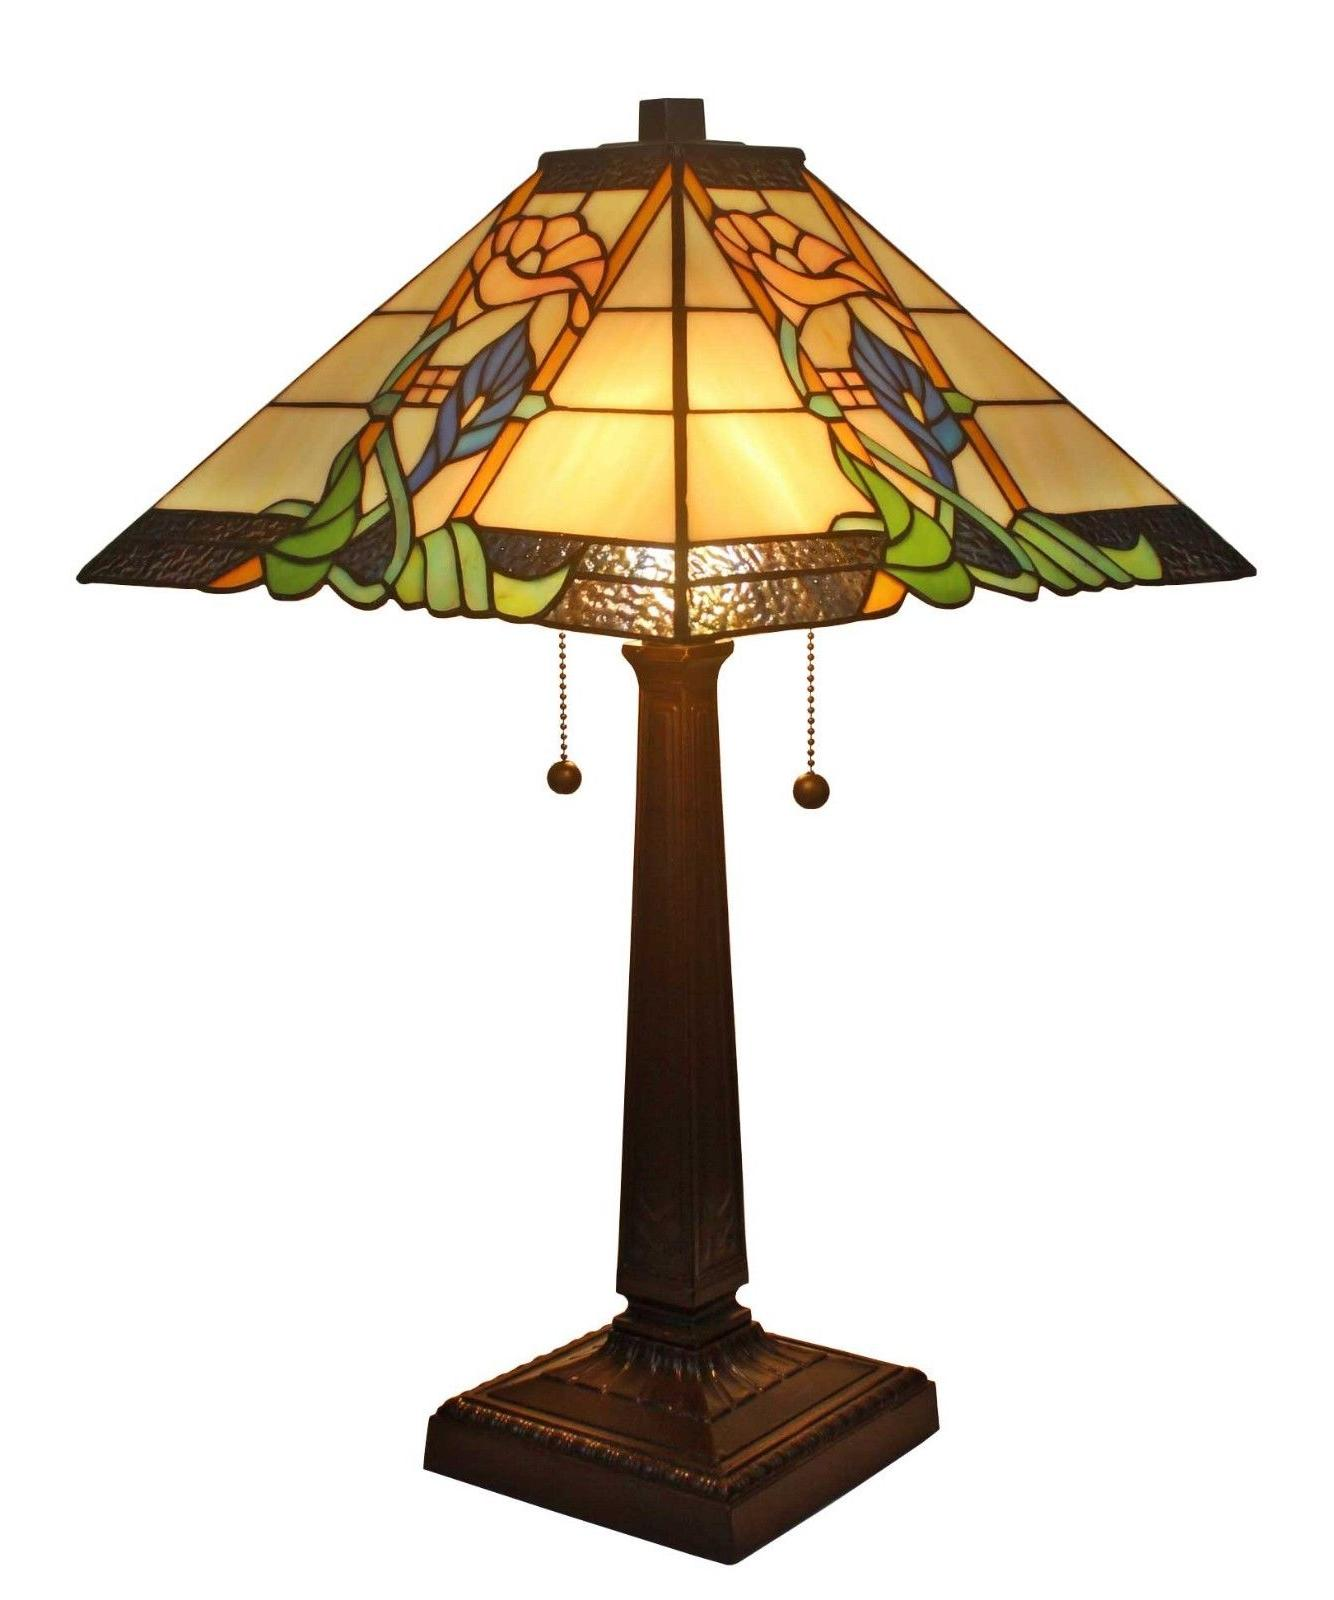 Amora Lighting AM058TL14 Tiffany Style Mission Table Lamp 23